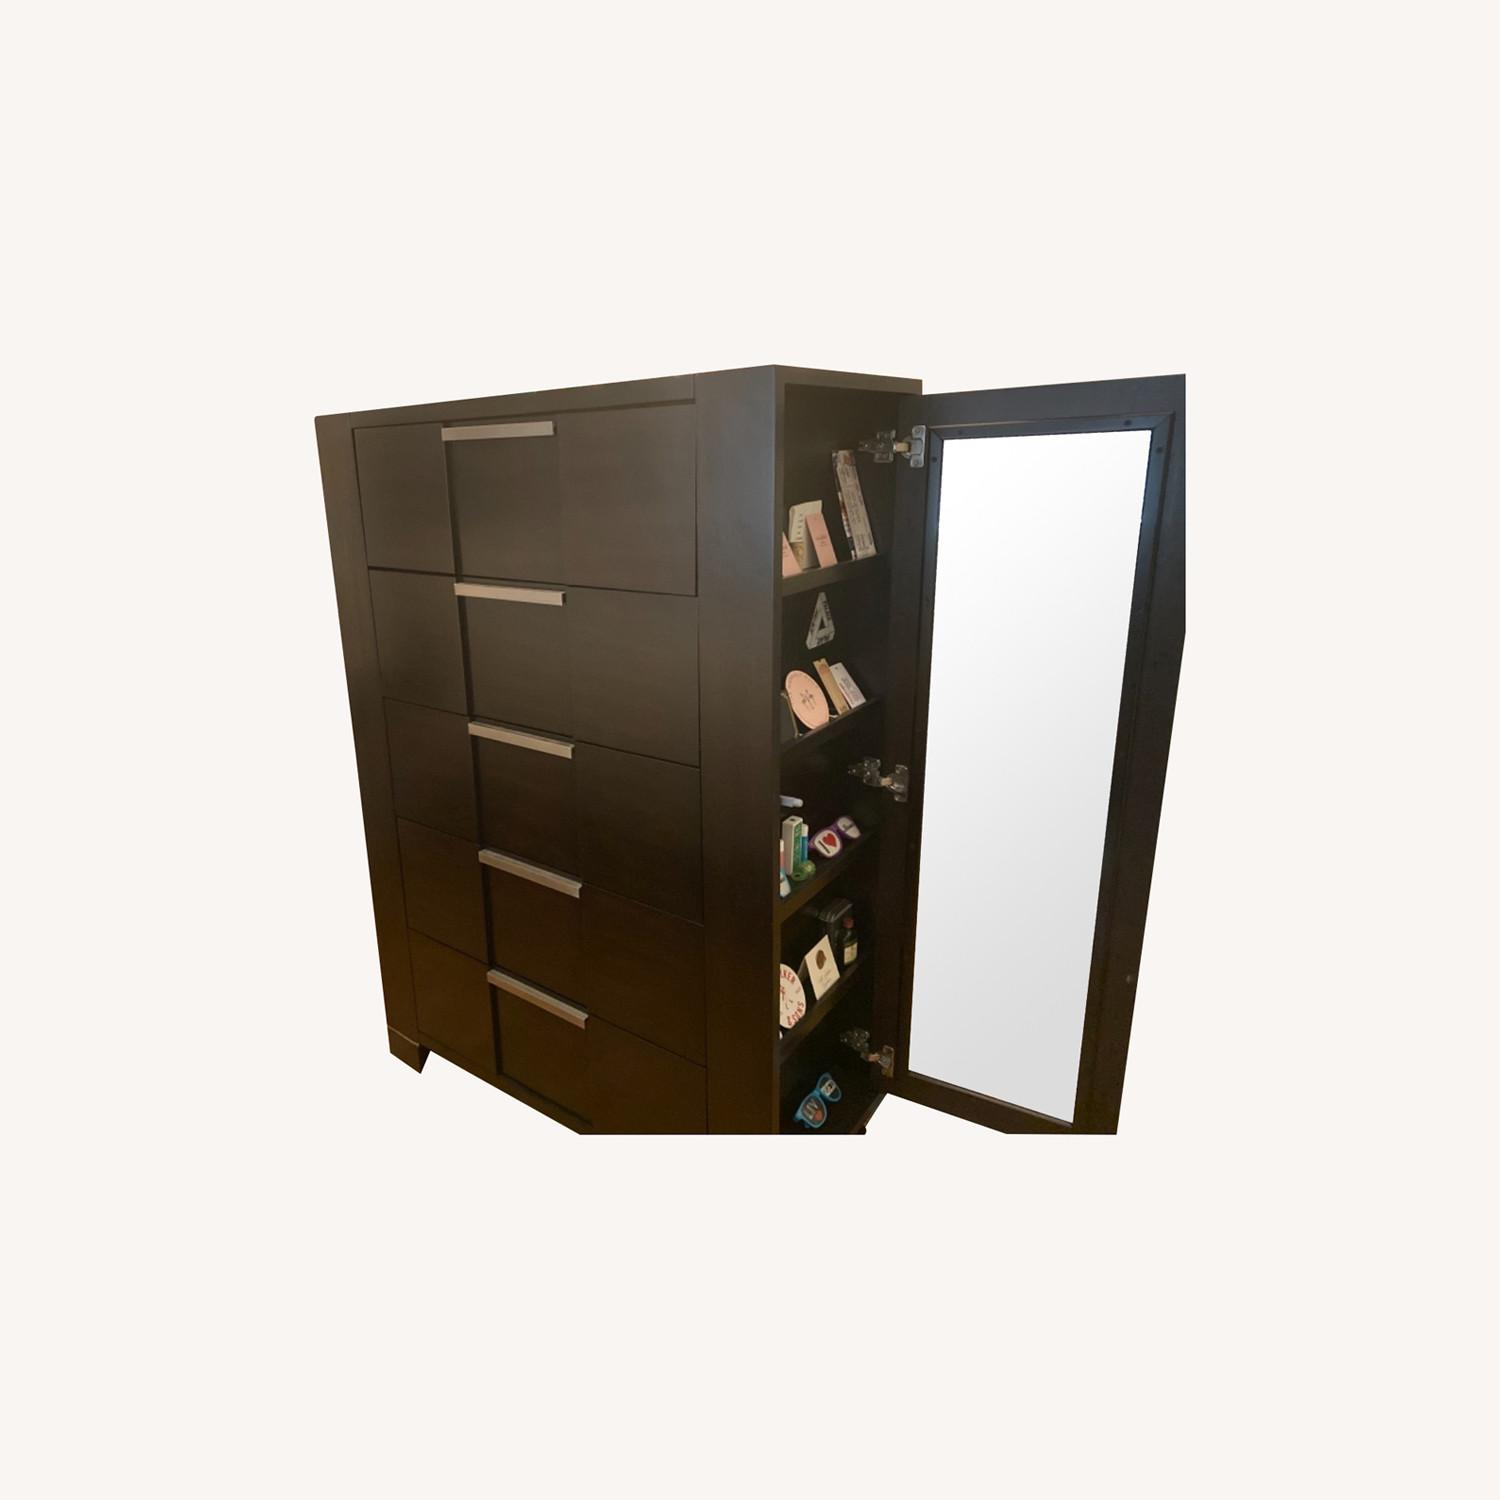 5-Drawer Dresser with Side Shelves and Mirror Door - image-0